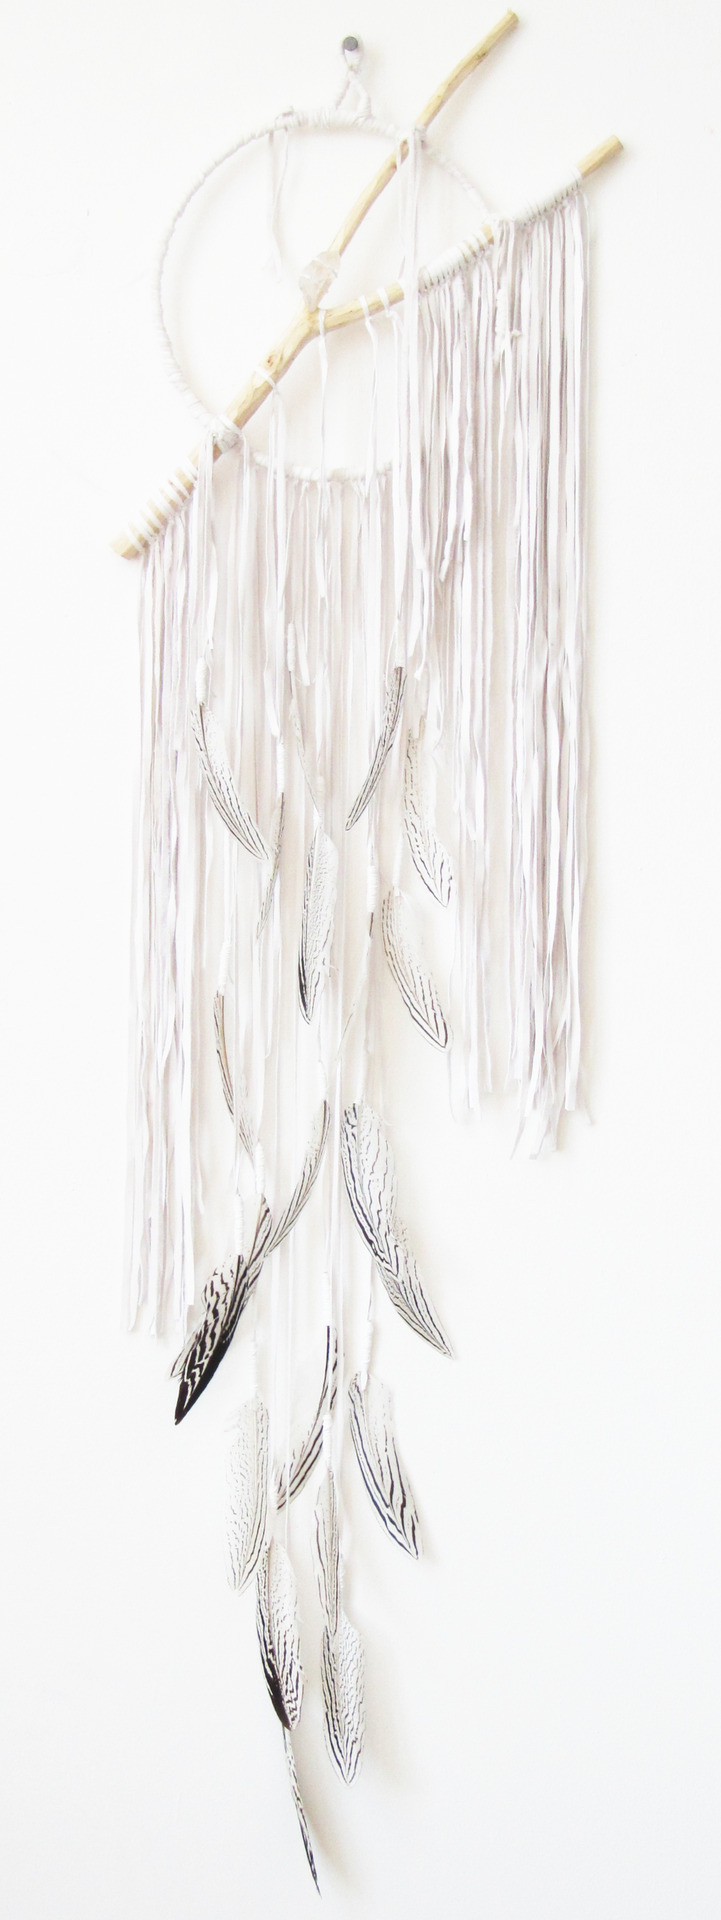 Dream Catcher  Atlantis Series  Snow Quartz White  Small  For Totokaelo  totokaelo.com